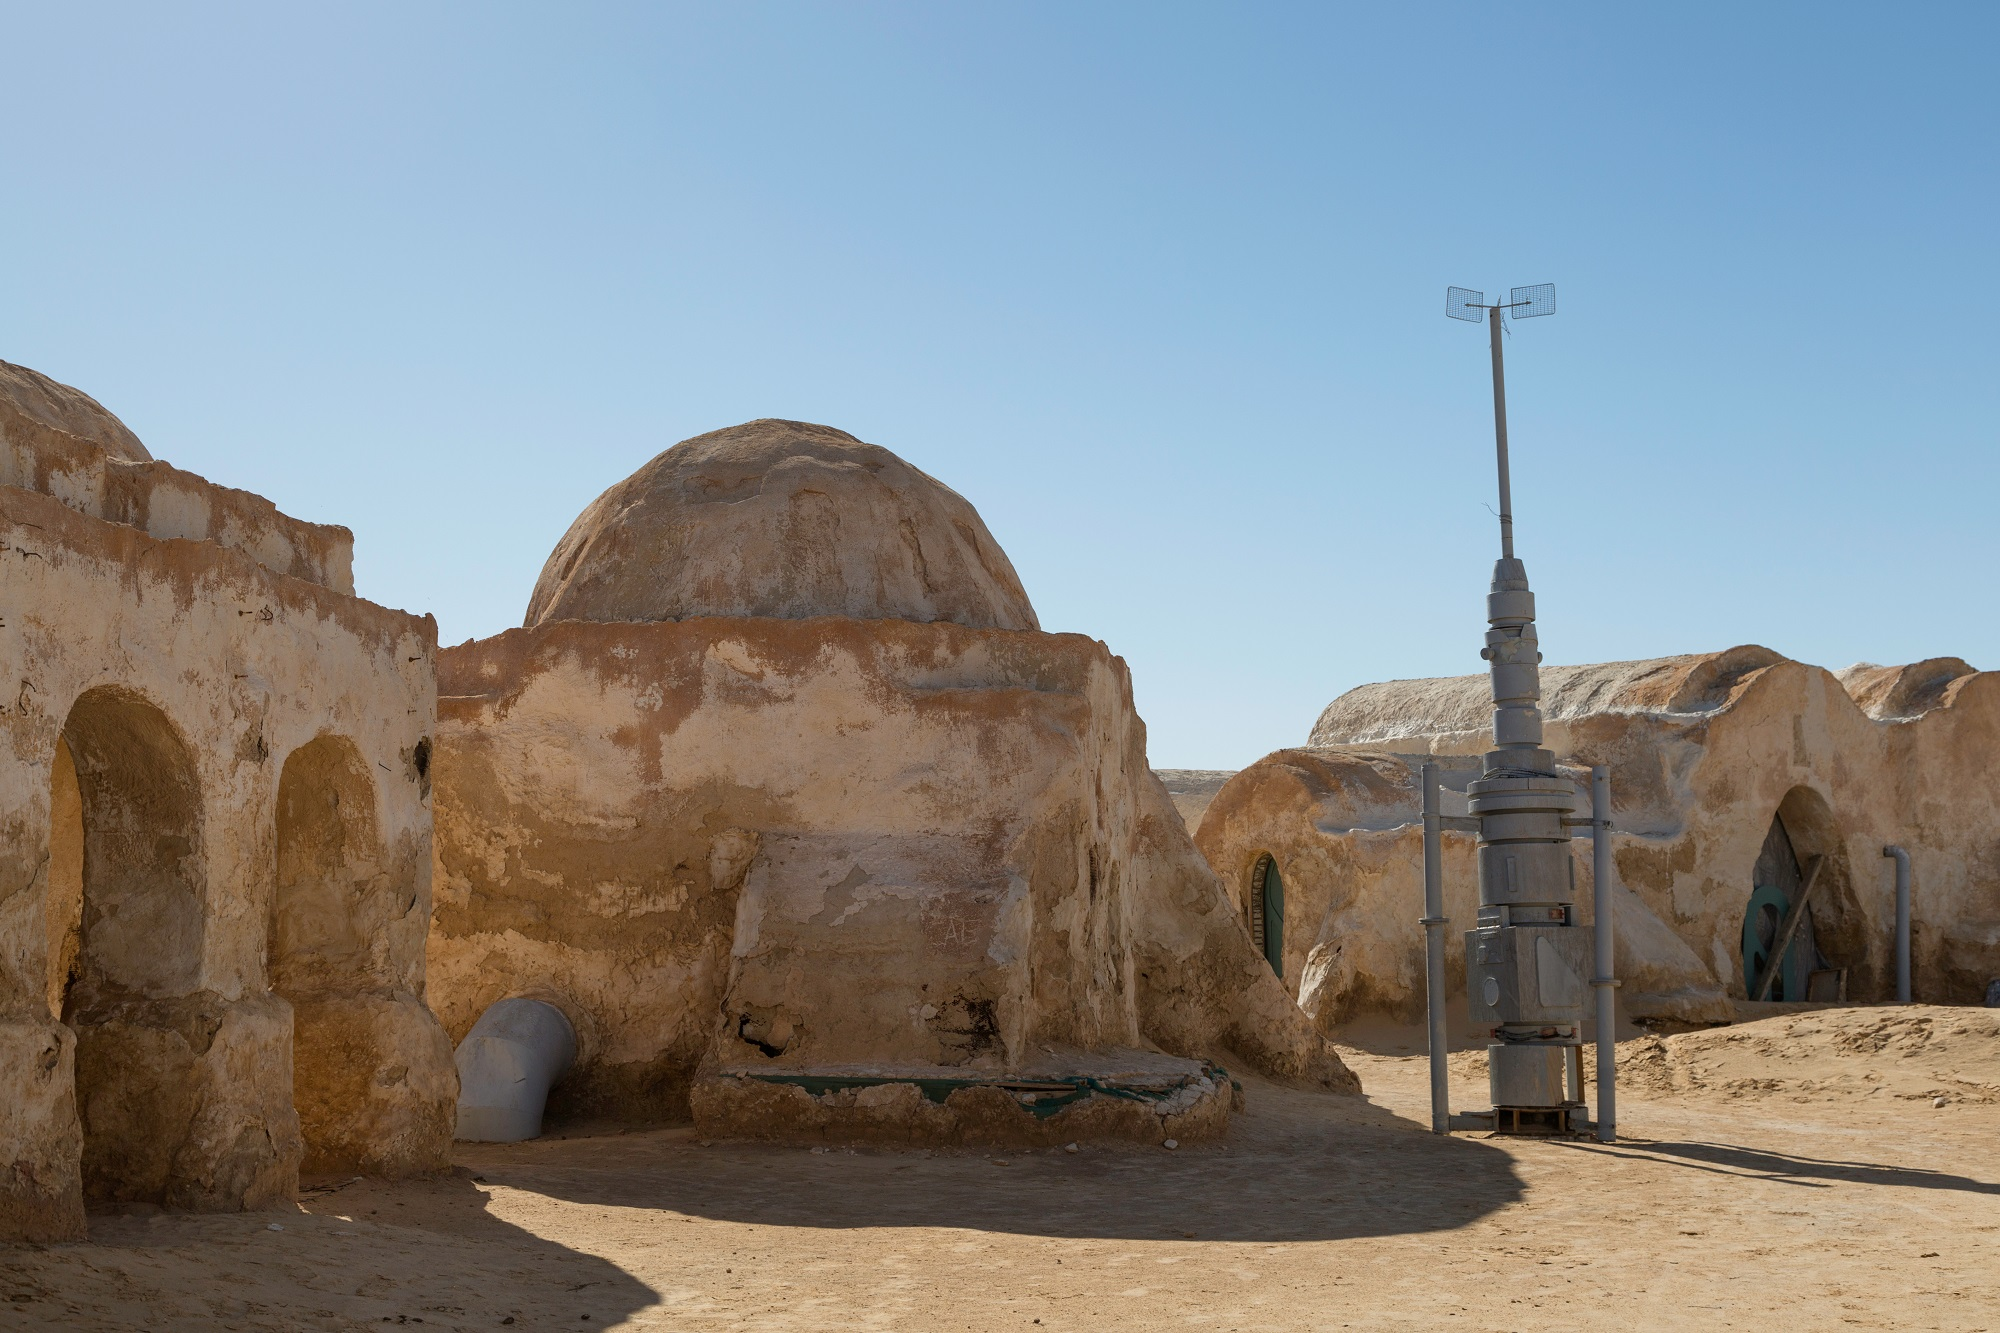 Next Star Wars movies and series. A set from Star Wars movies, houses from planet Tatouine.